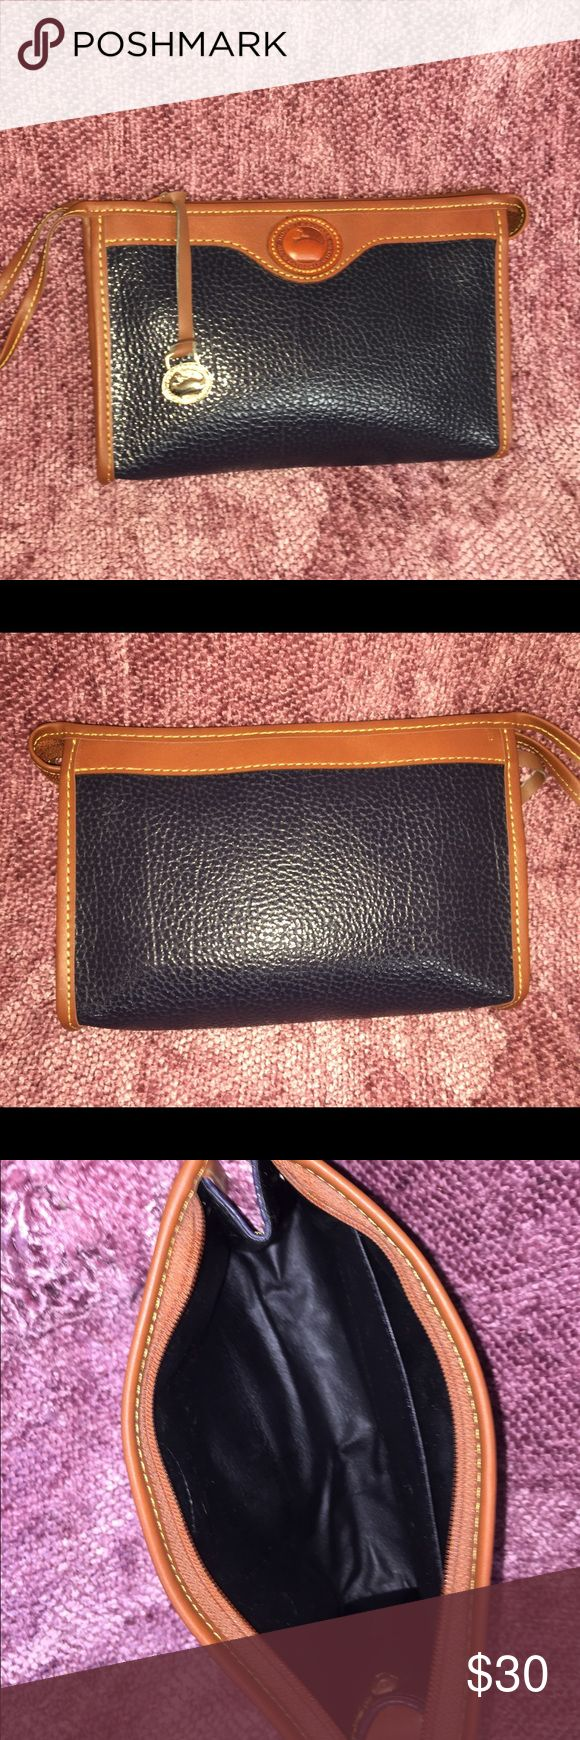 Dooney & Bourke clutch wristlet navy and brown 💙 Dooney & Bourke All Weather Leather clutch wristlet. Navy and brown. Wear on back of zipper pull-see picture. Otherwise in excellent condition. 🦆. Dooney & Bourke Bags